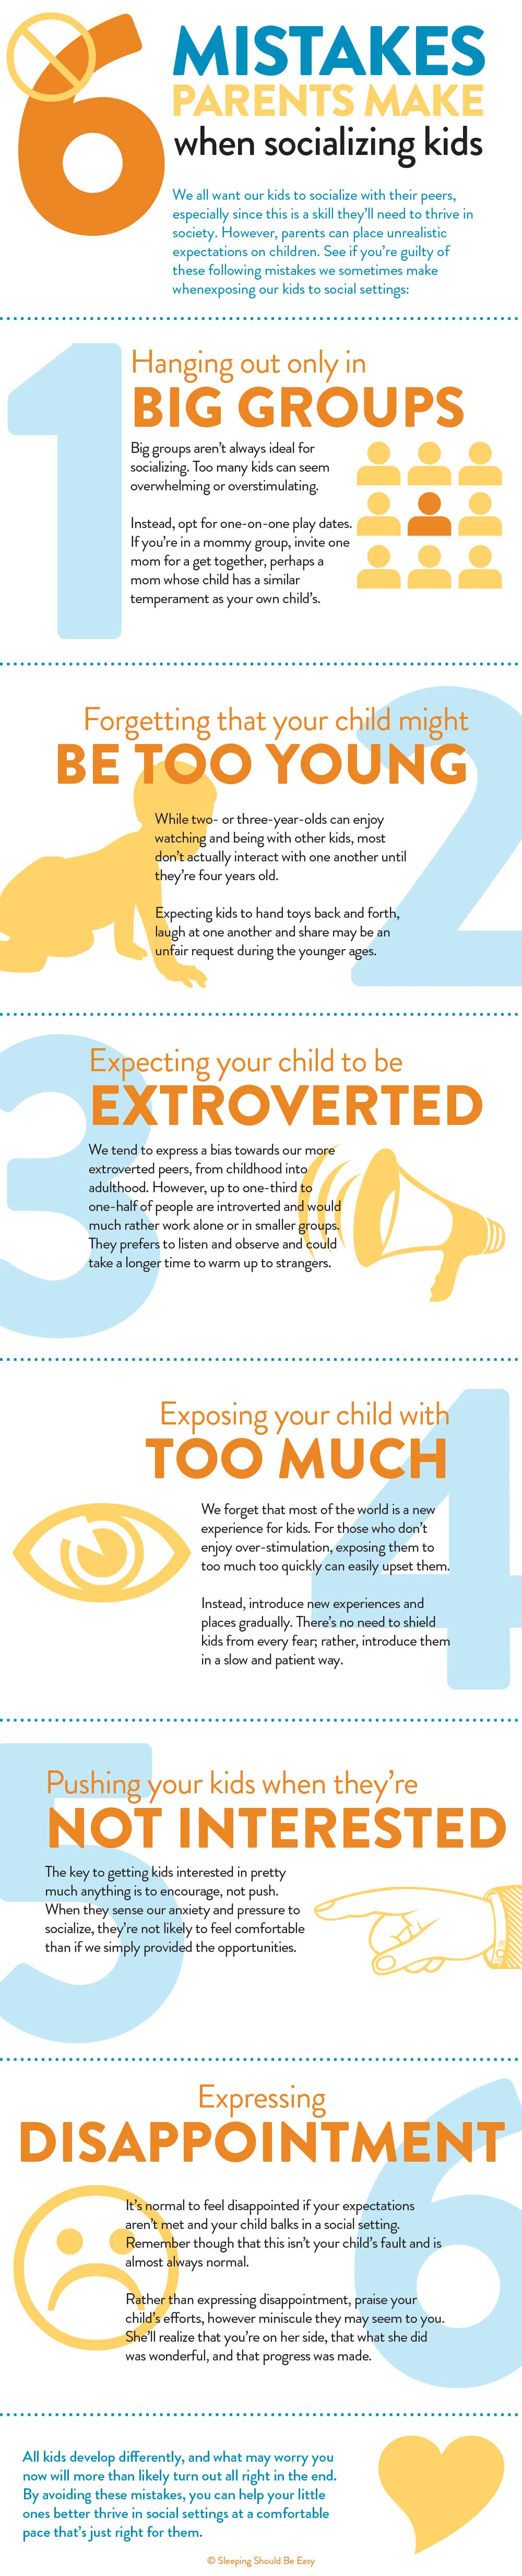 6 Mistakes Parents Make When Socializing Your Child